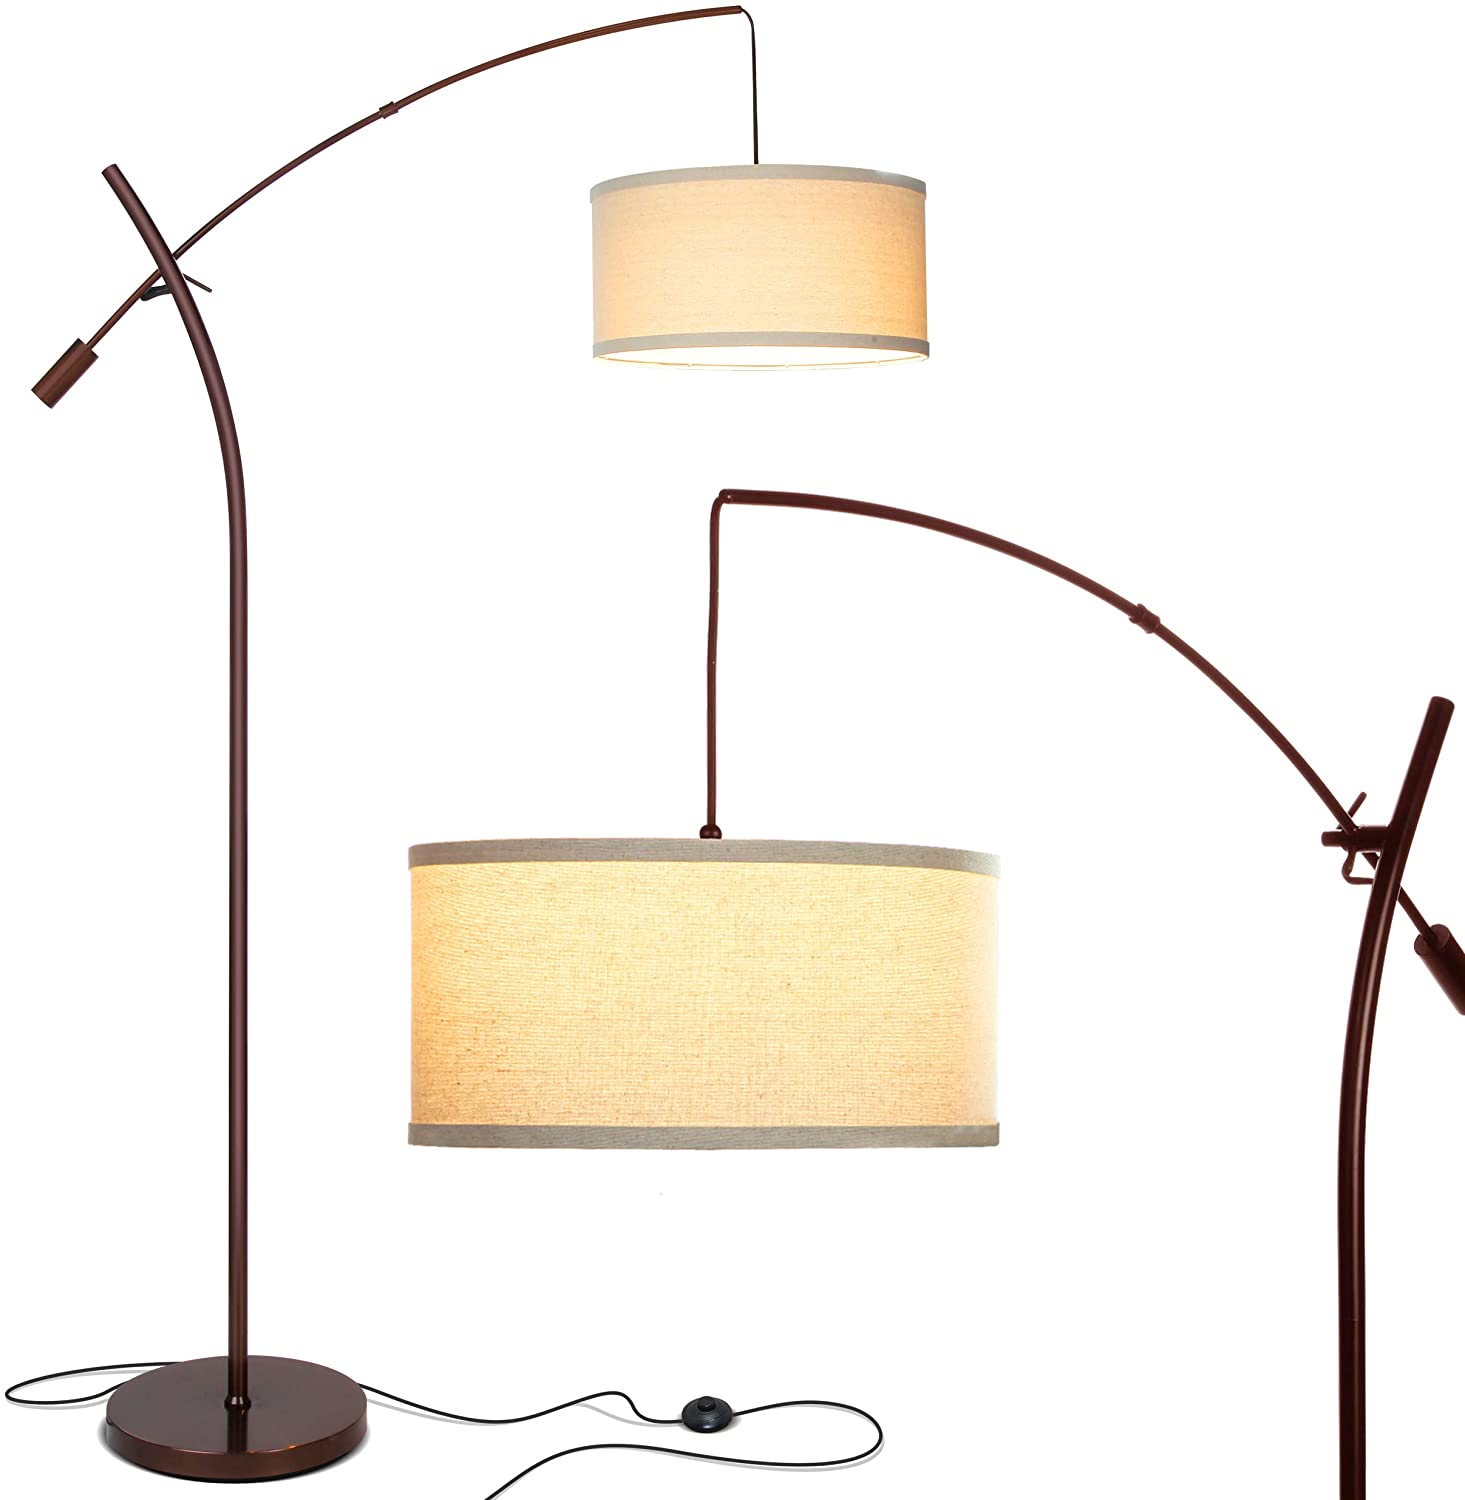 brightech grayson modern arc floor lamp for living room contemporary tall led light reaching from behind the couch to hang over it adjustable